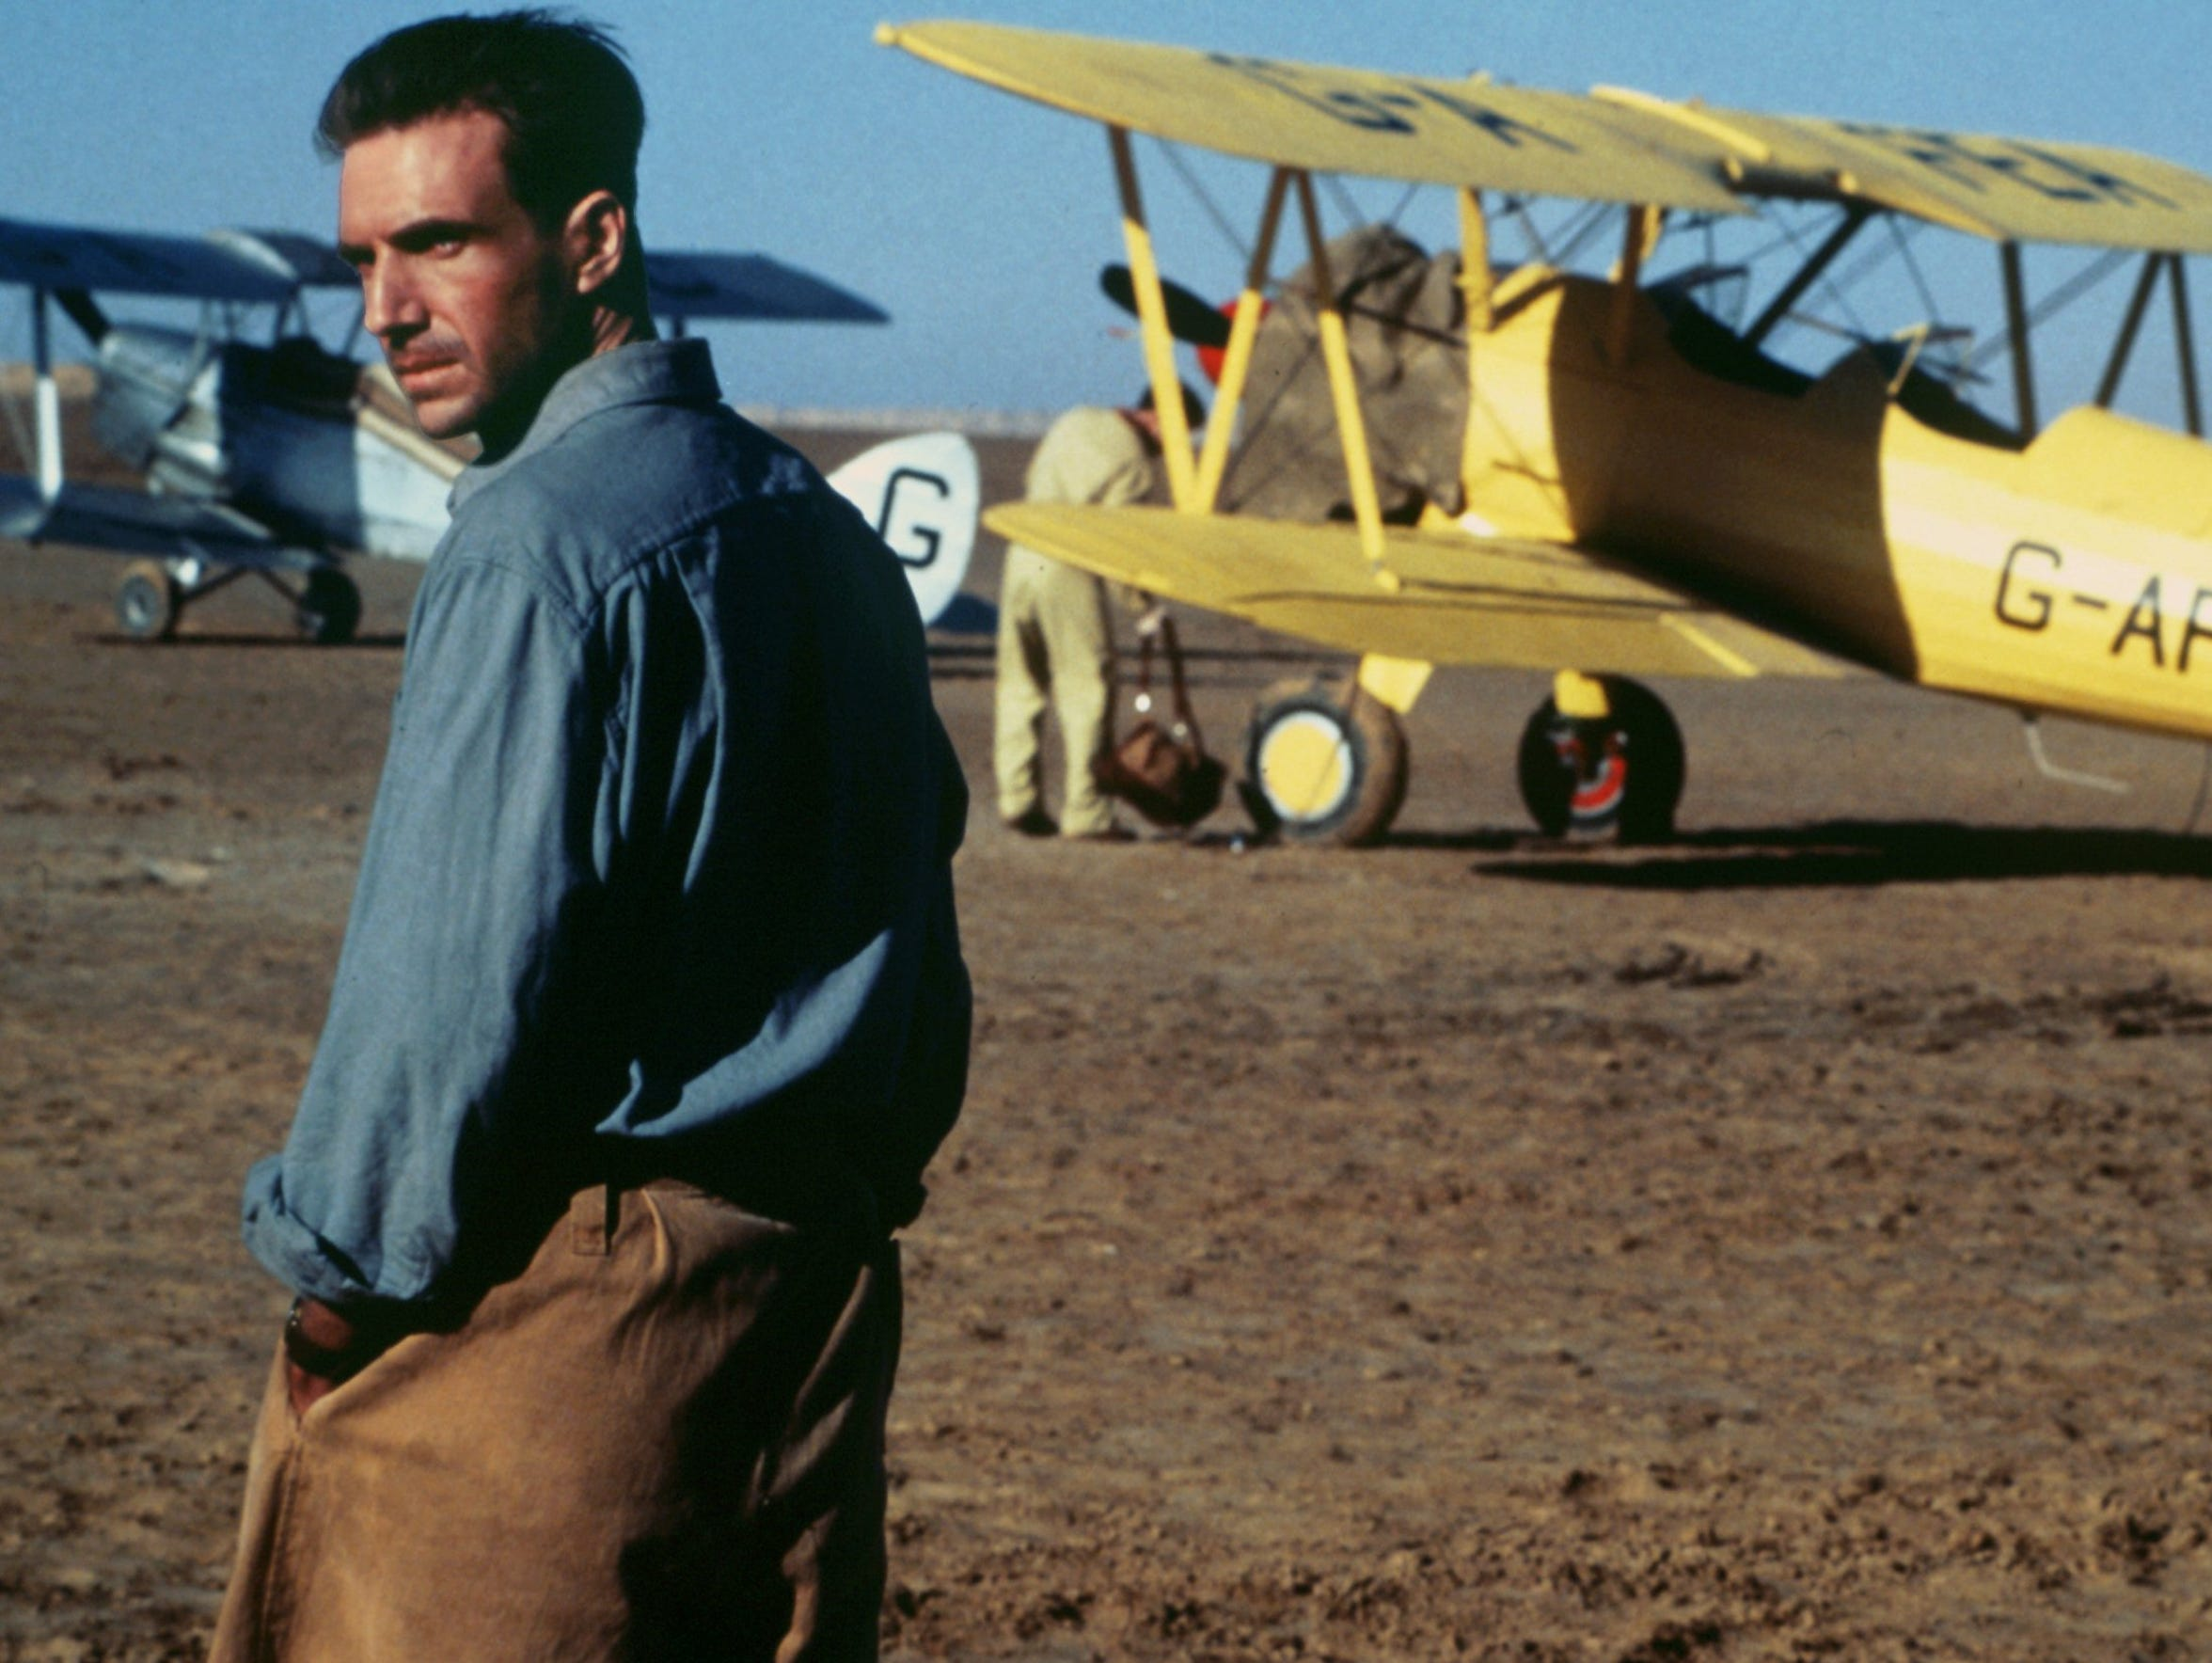 1996: 'The English Patient,' based on the novel by